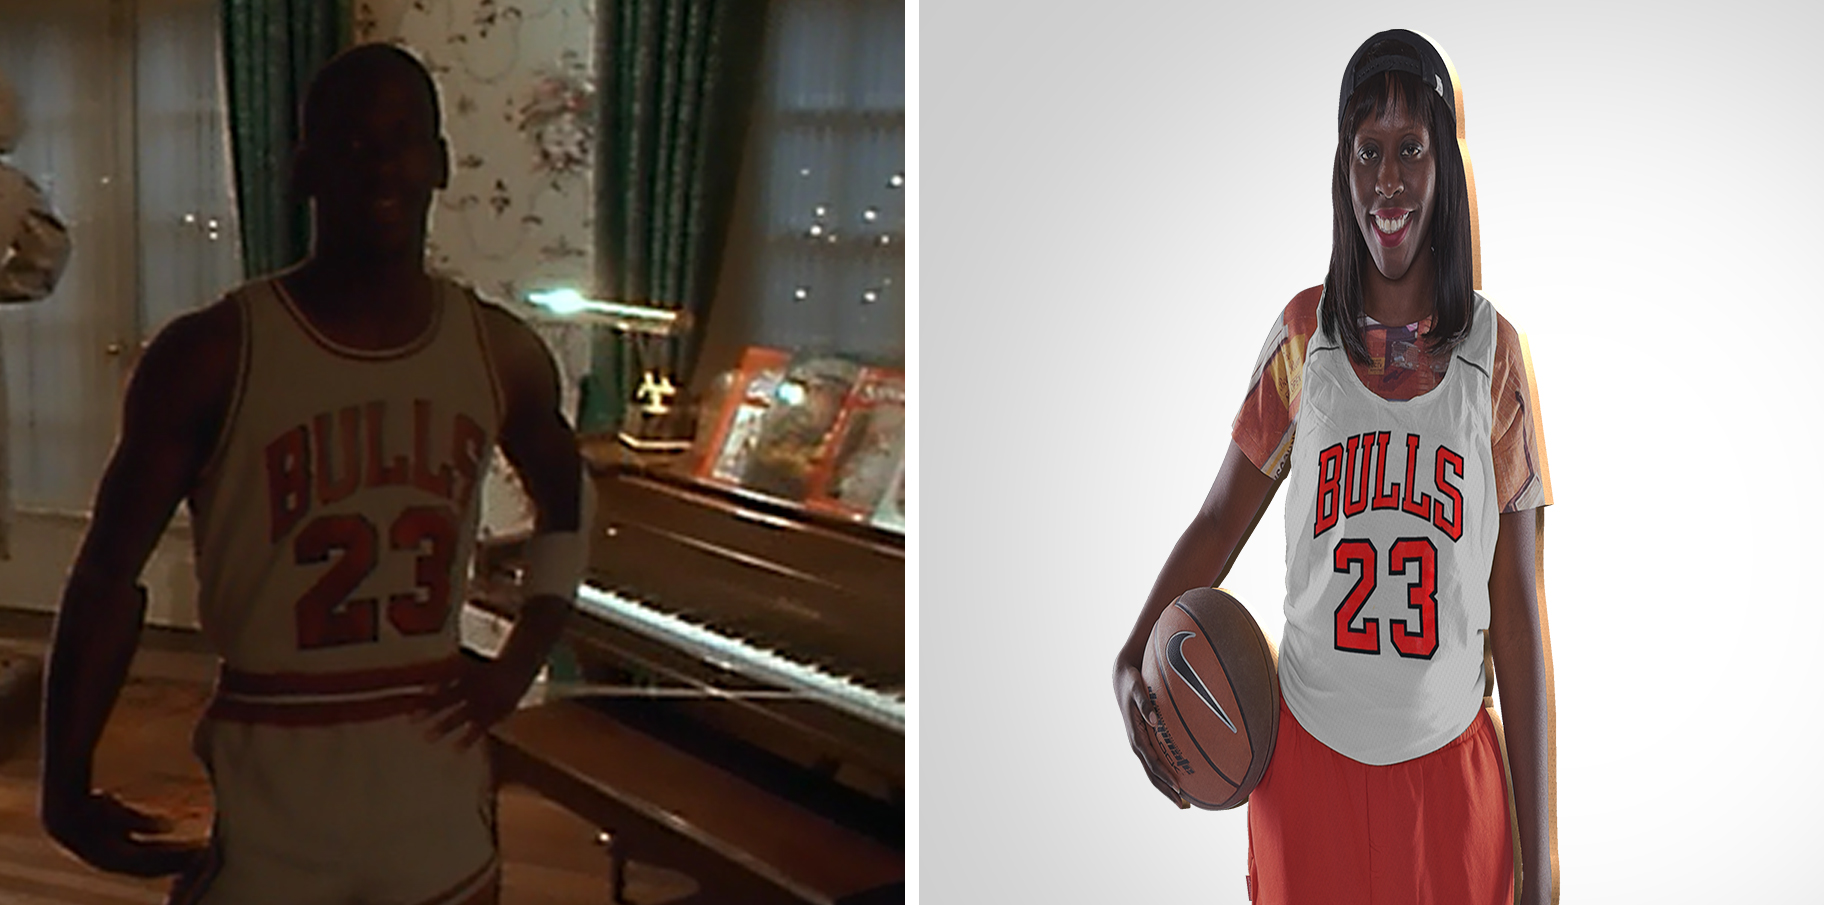 Sophie as a Basketball Star cardboard cut-out